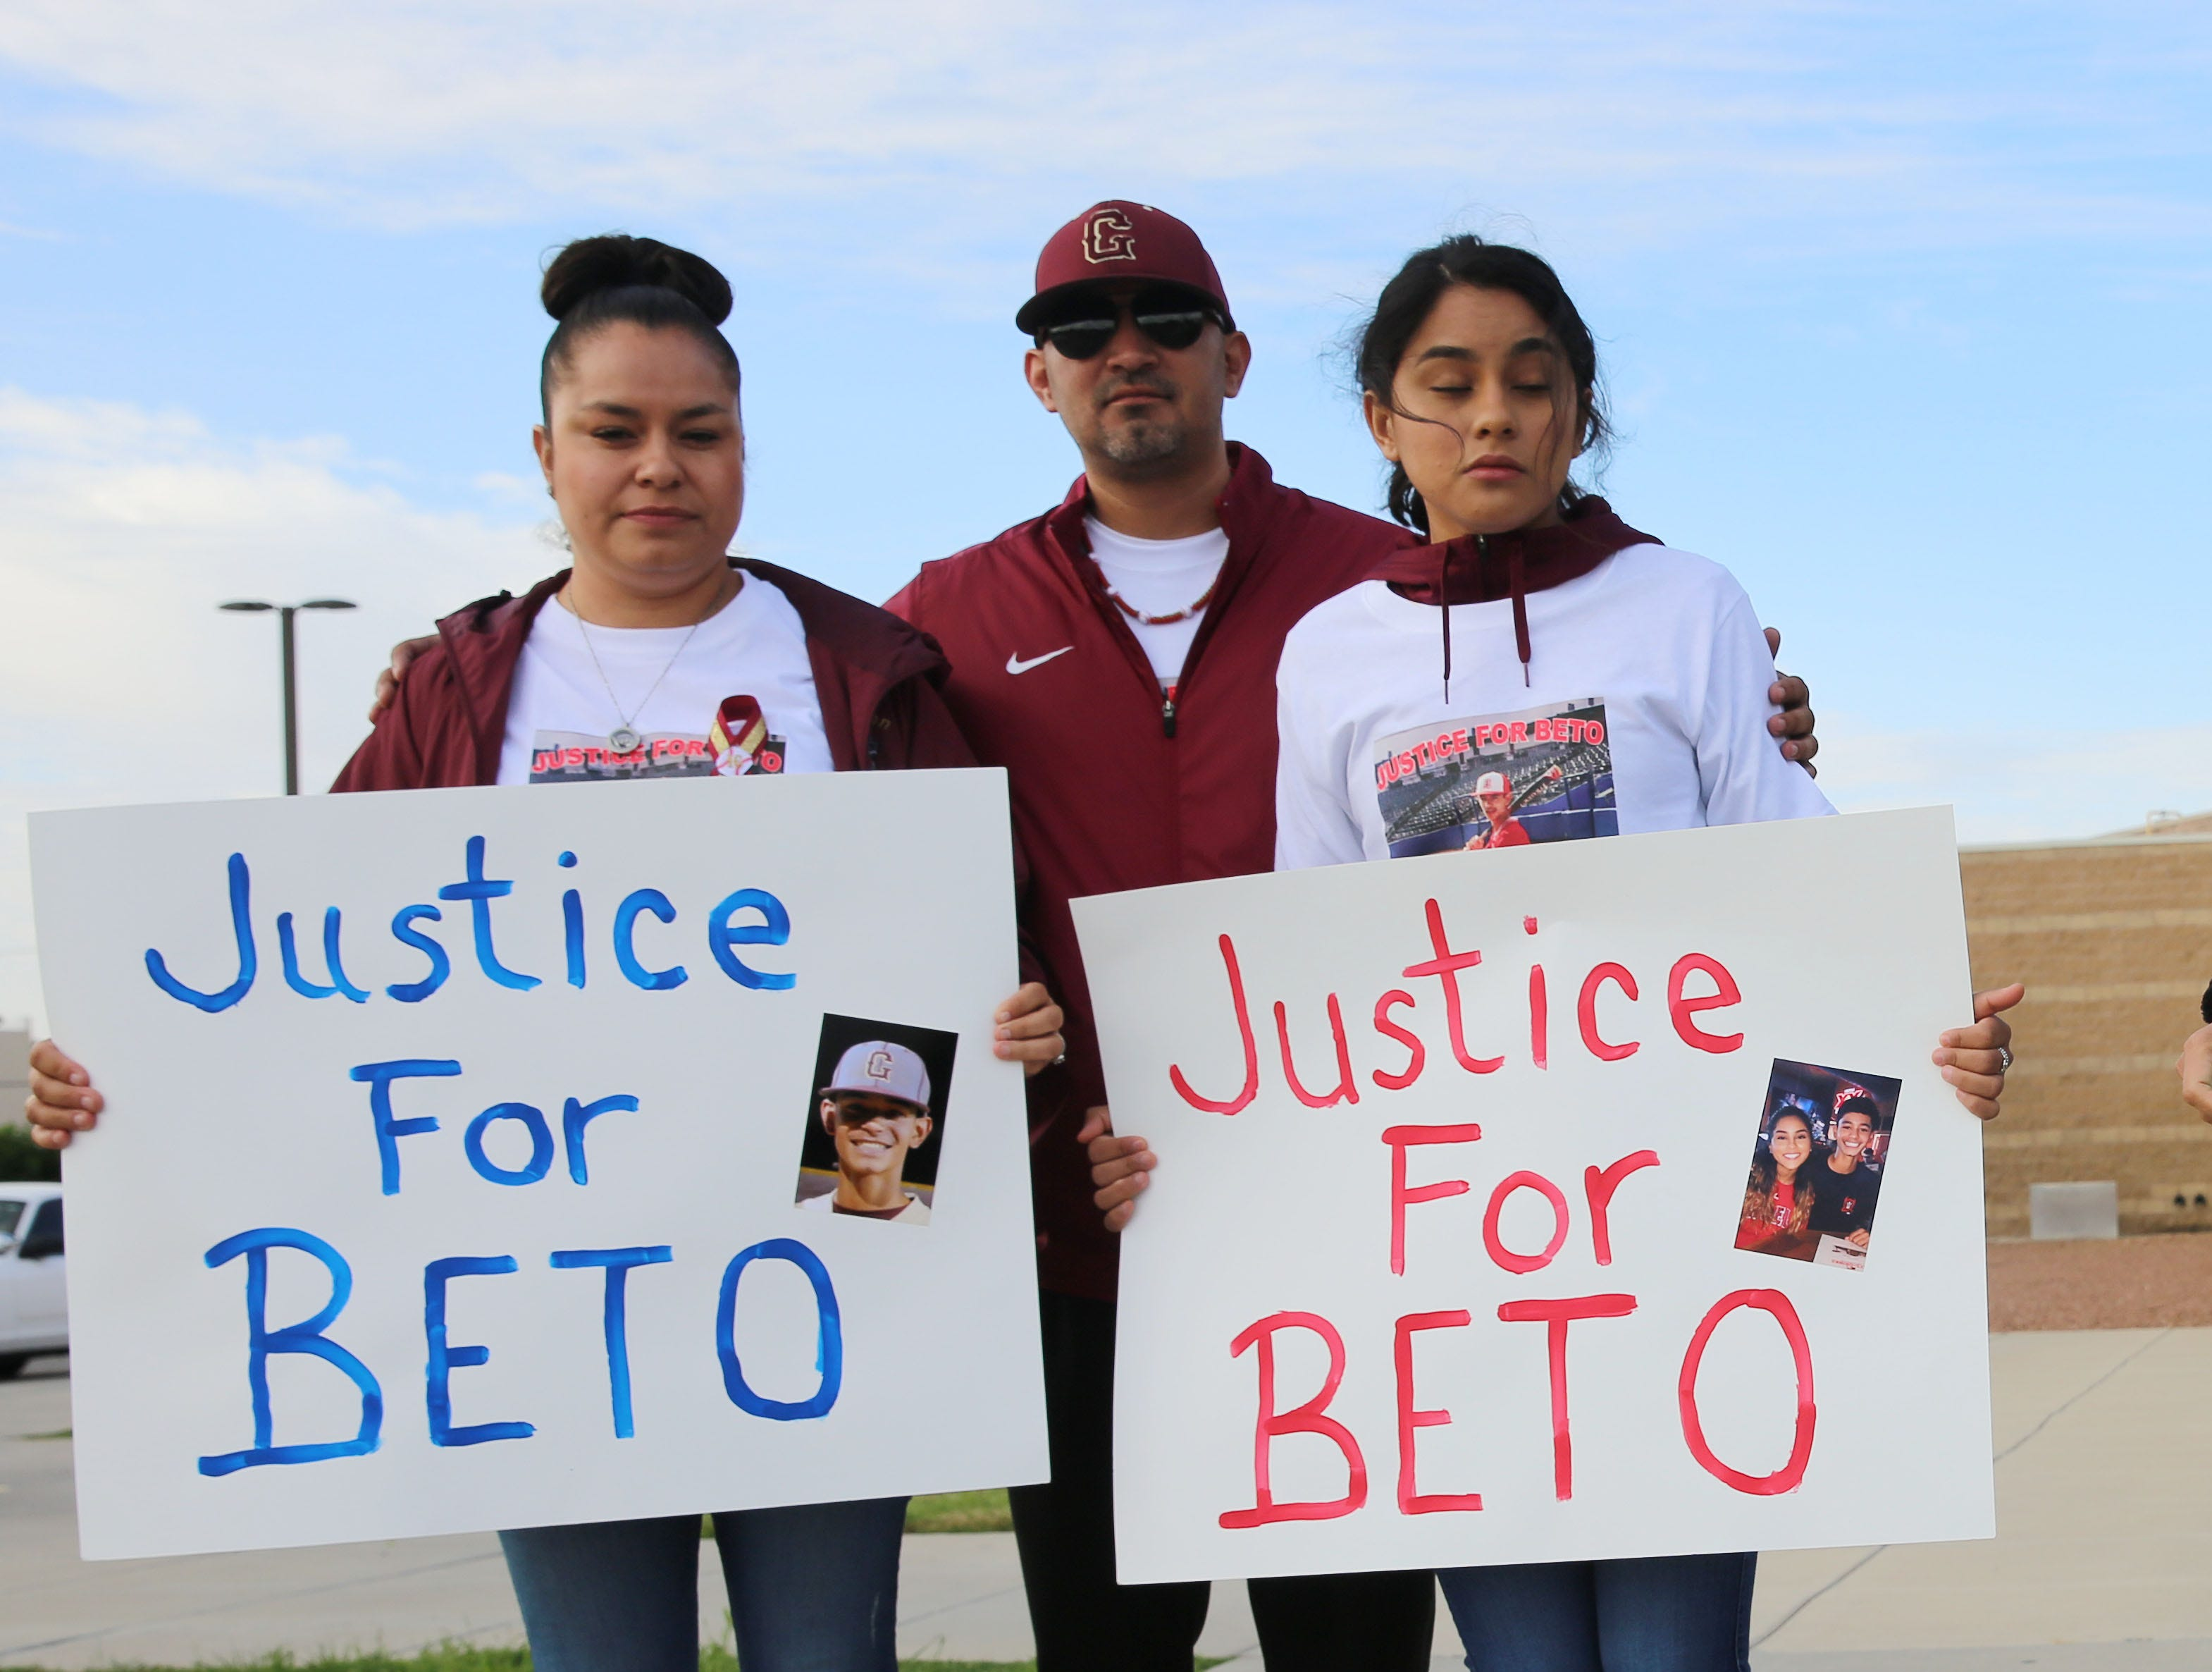 Denise and Beto Romero Sr., were surrounded by supporters Friday May 10, 2019, at the 3rd District Court in Las Cruces, where the man stand accused of killing their son, 16-year-old Beto Romero, in an April 3 hit-and-run accident, was appearing before a judge in an evidentiary hearing, that ultimately determined whether or not he would remain free until the trial. Judge Marci Beyer.